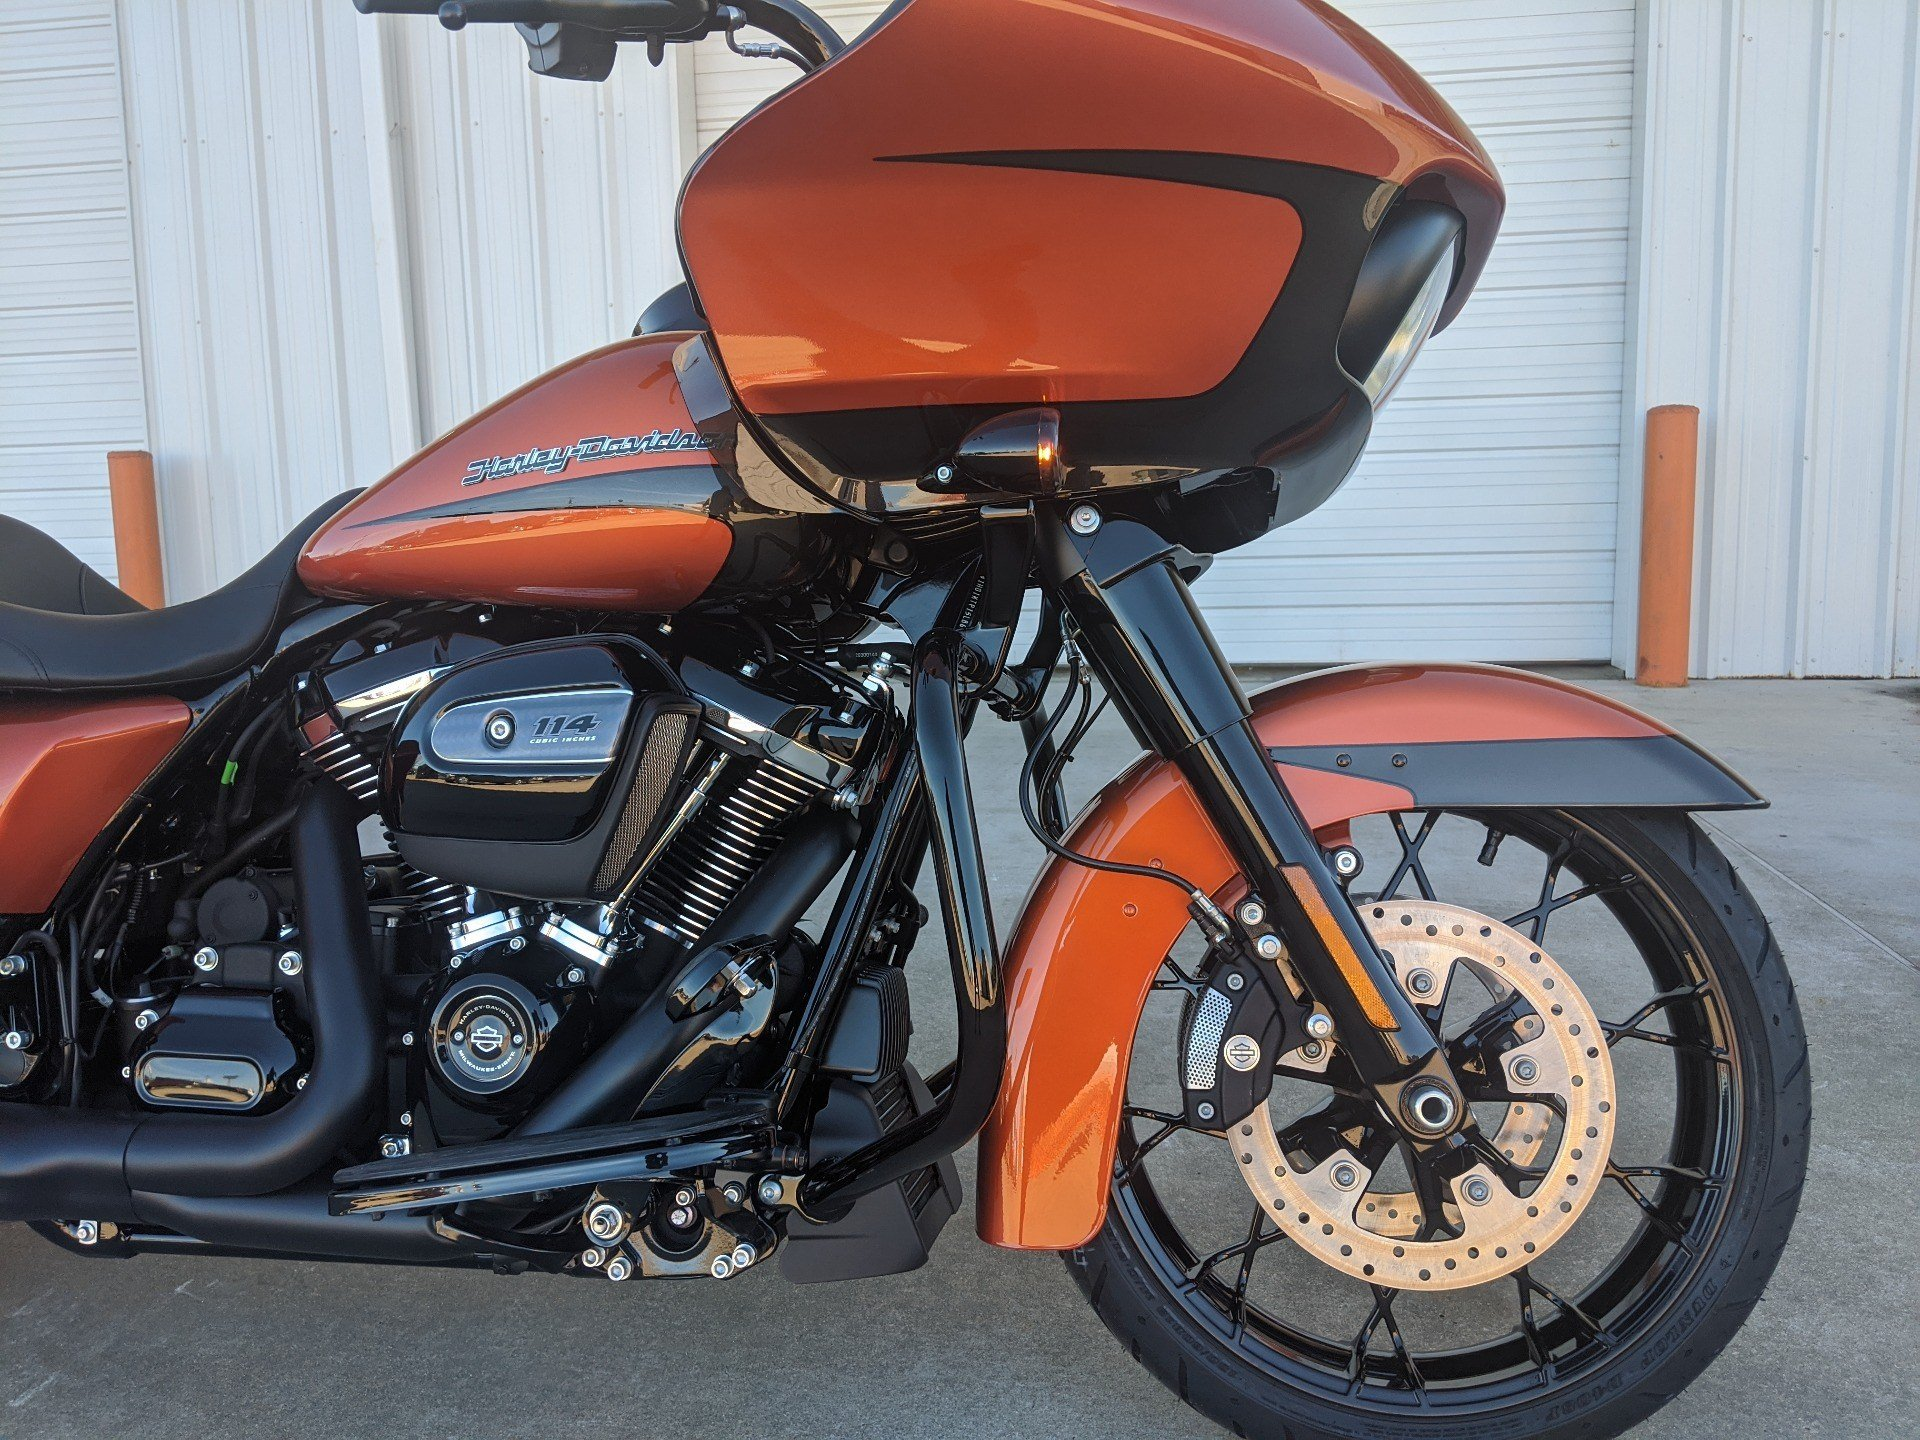 2020 road glide special for sale near me - Photo 3